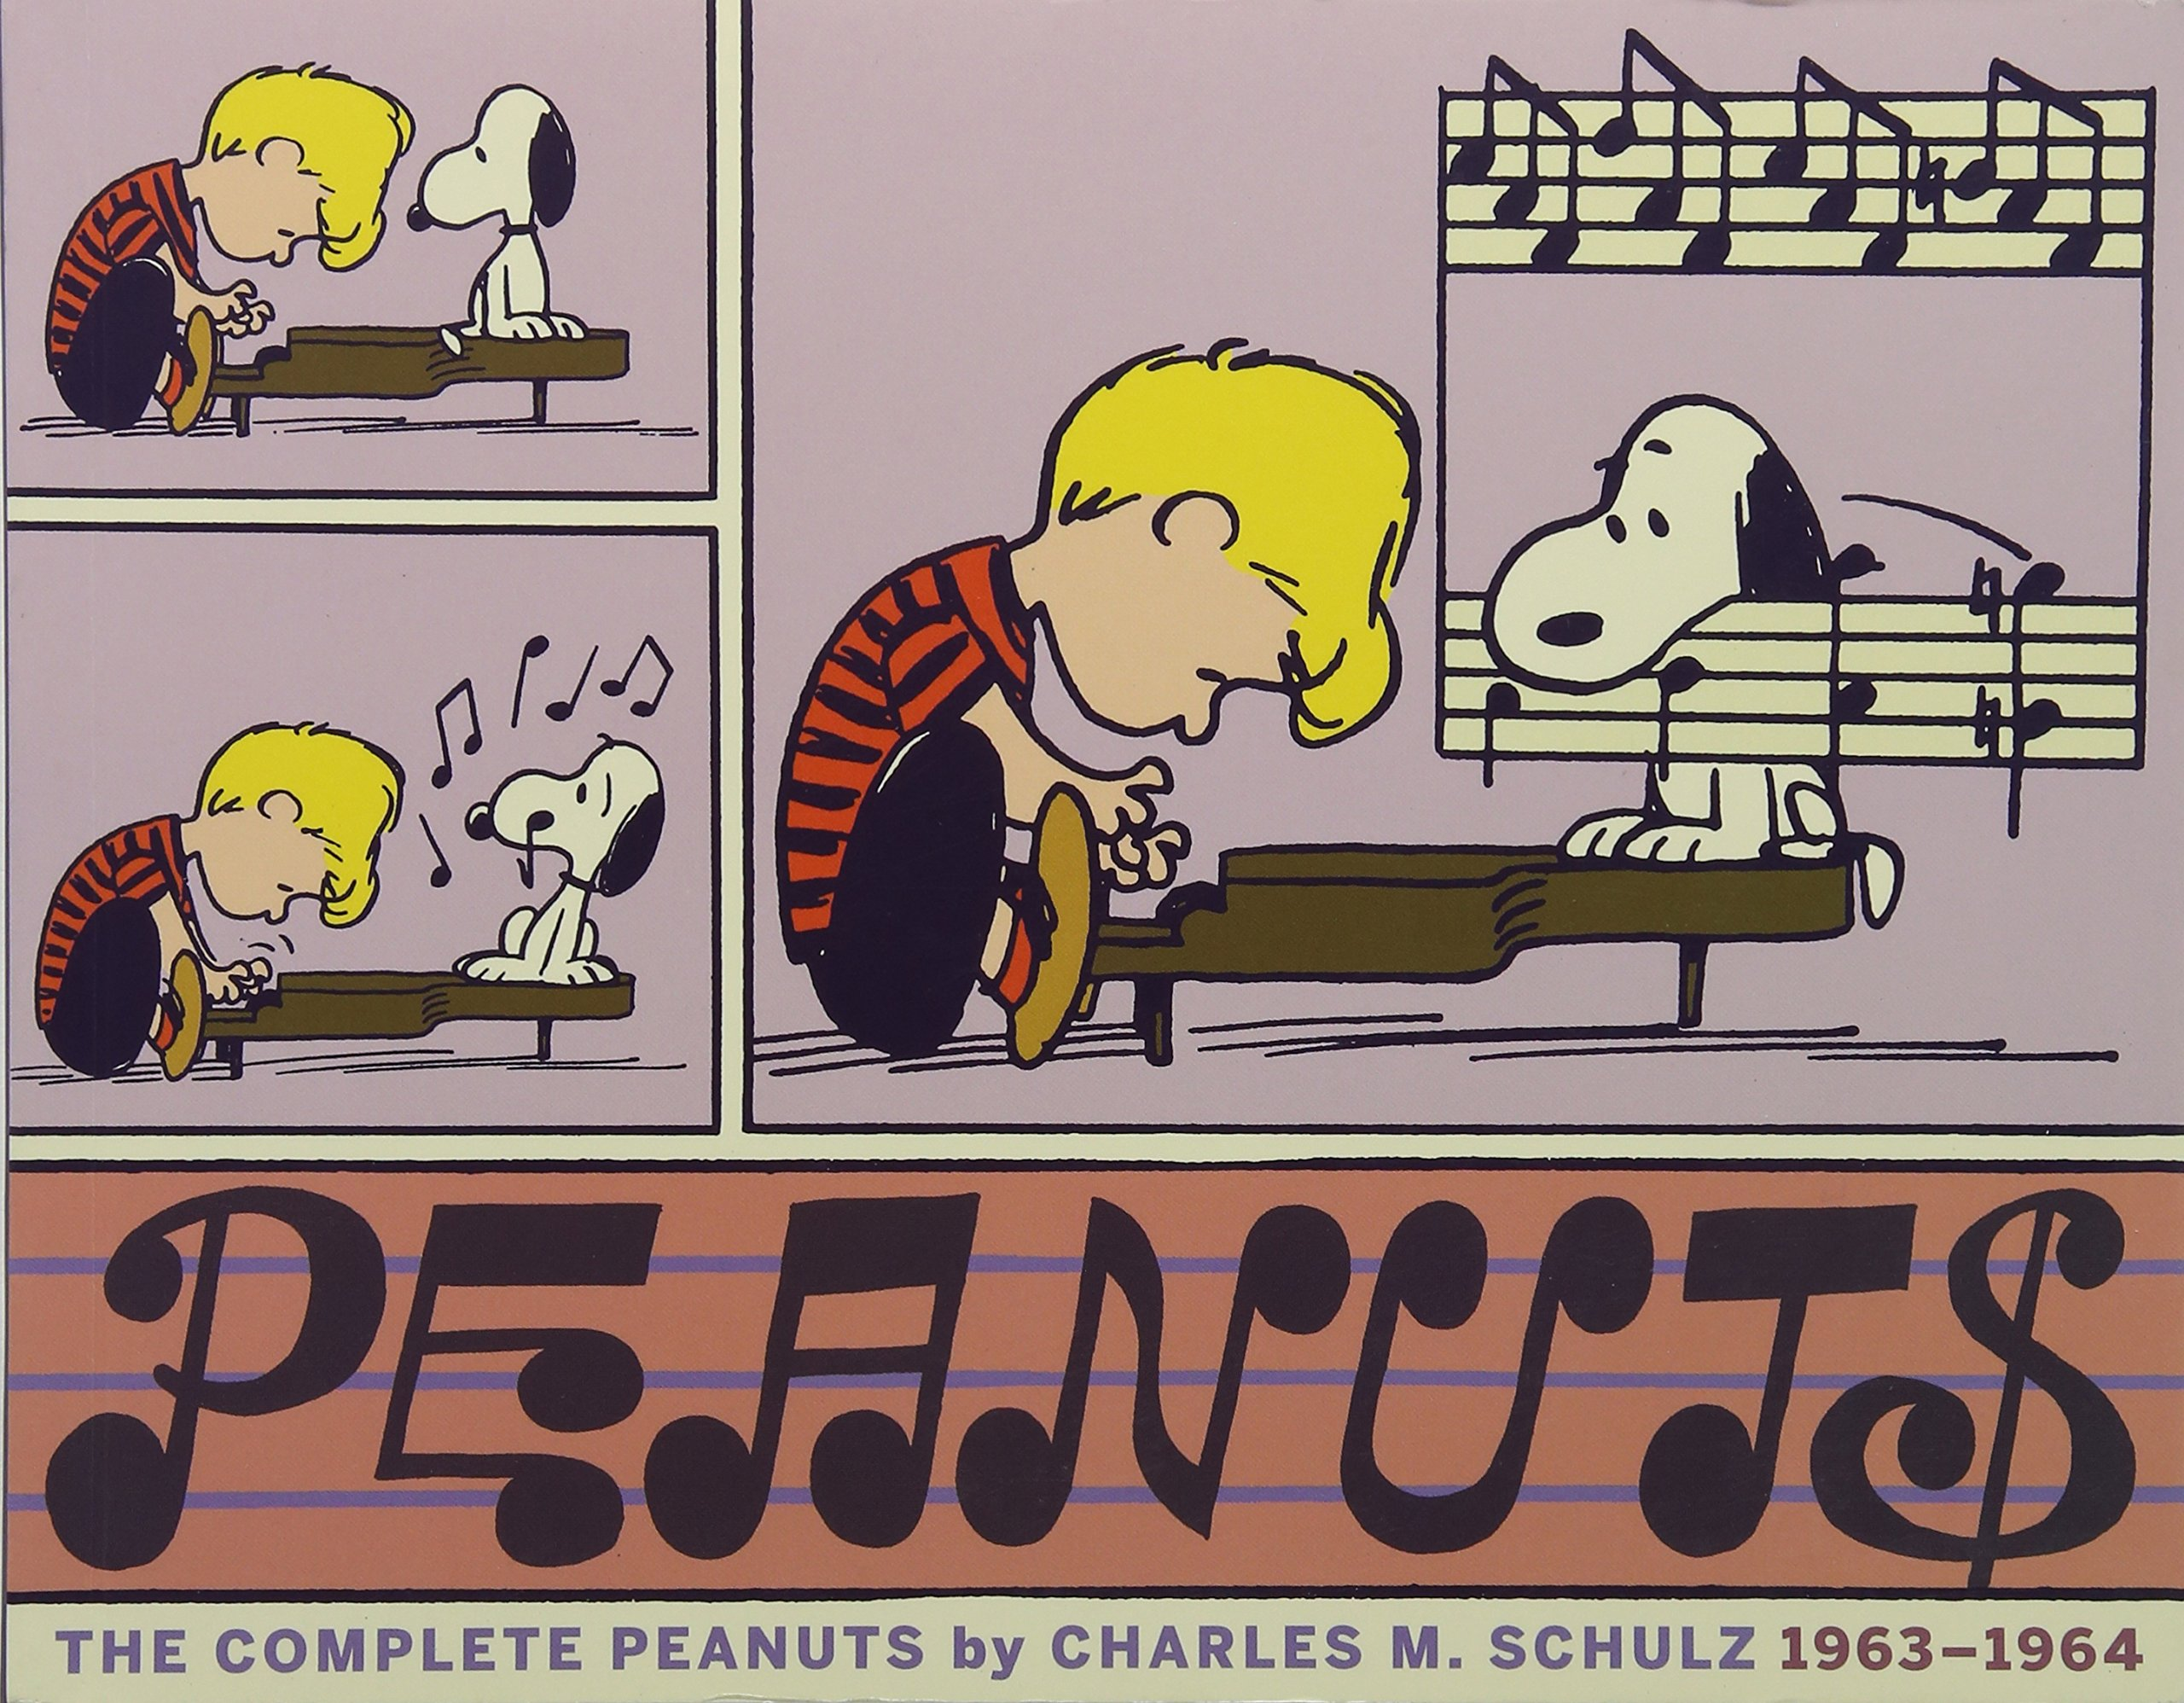 The Complete Peanuts: 1963-1964 (Vol. 7) Paperback Edition (Peanuts - Complete Peanuts)